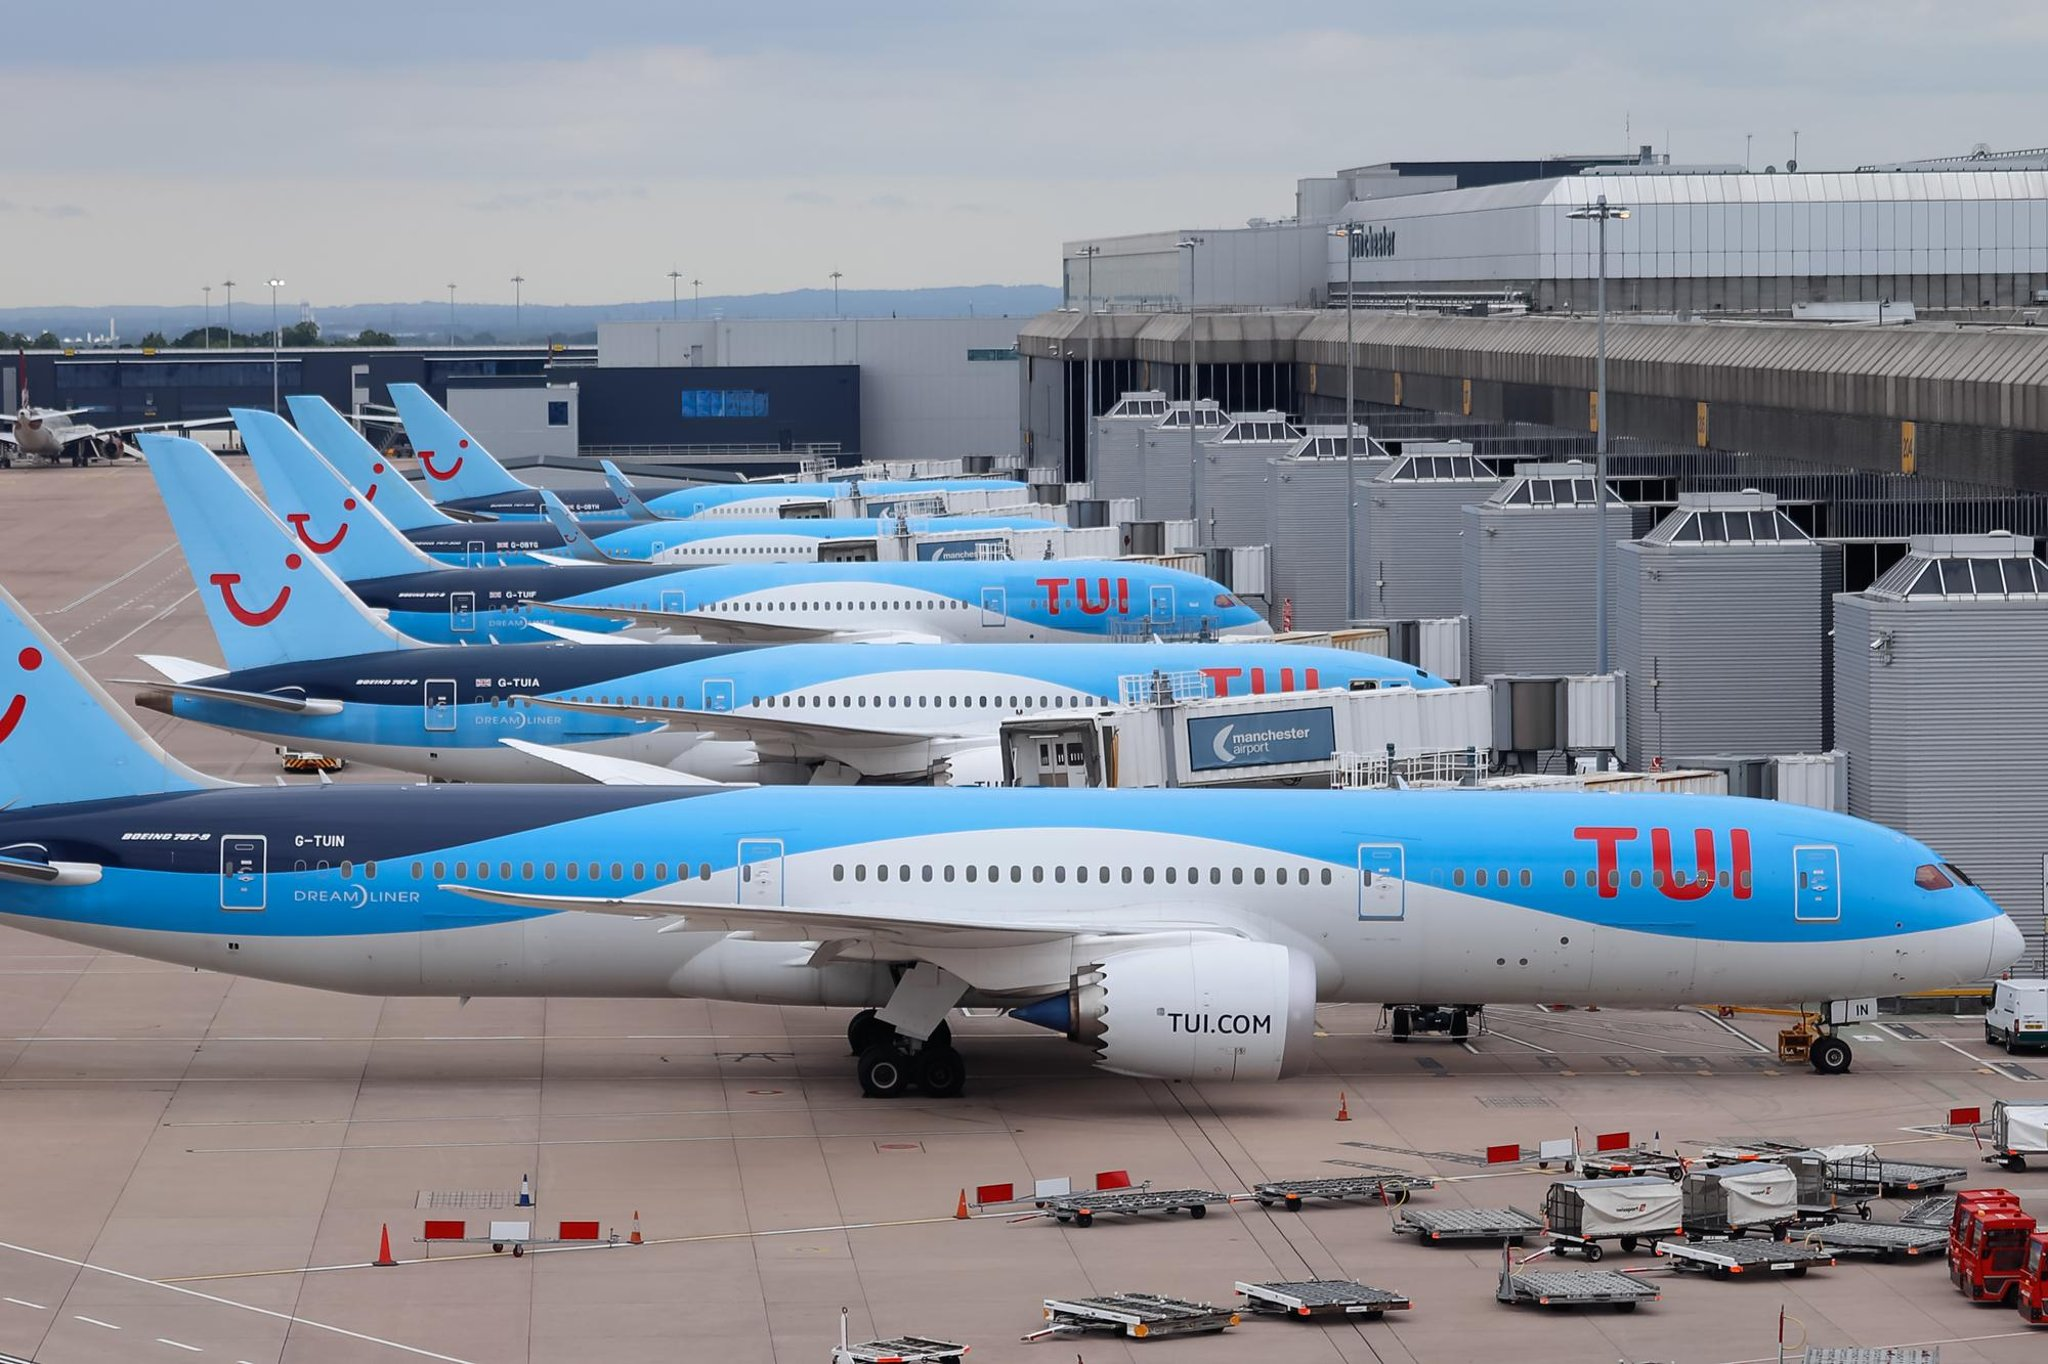 Airlines Tui UK and Aer Lingus resume international routes